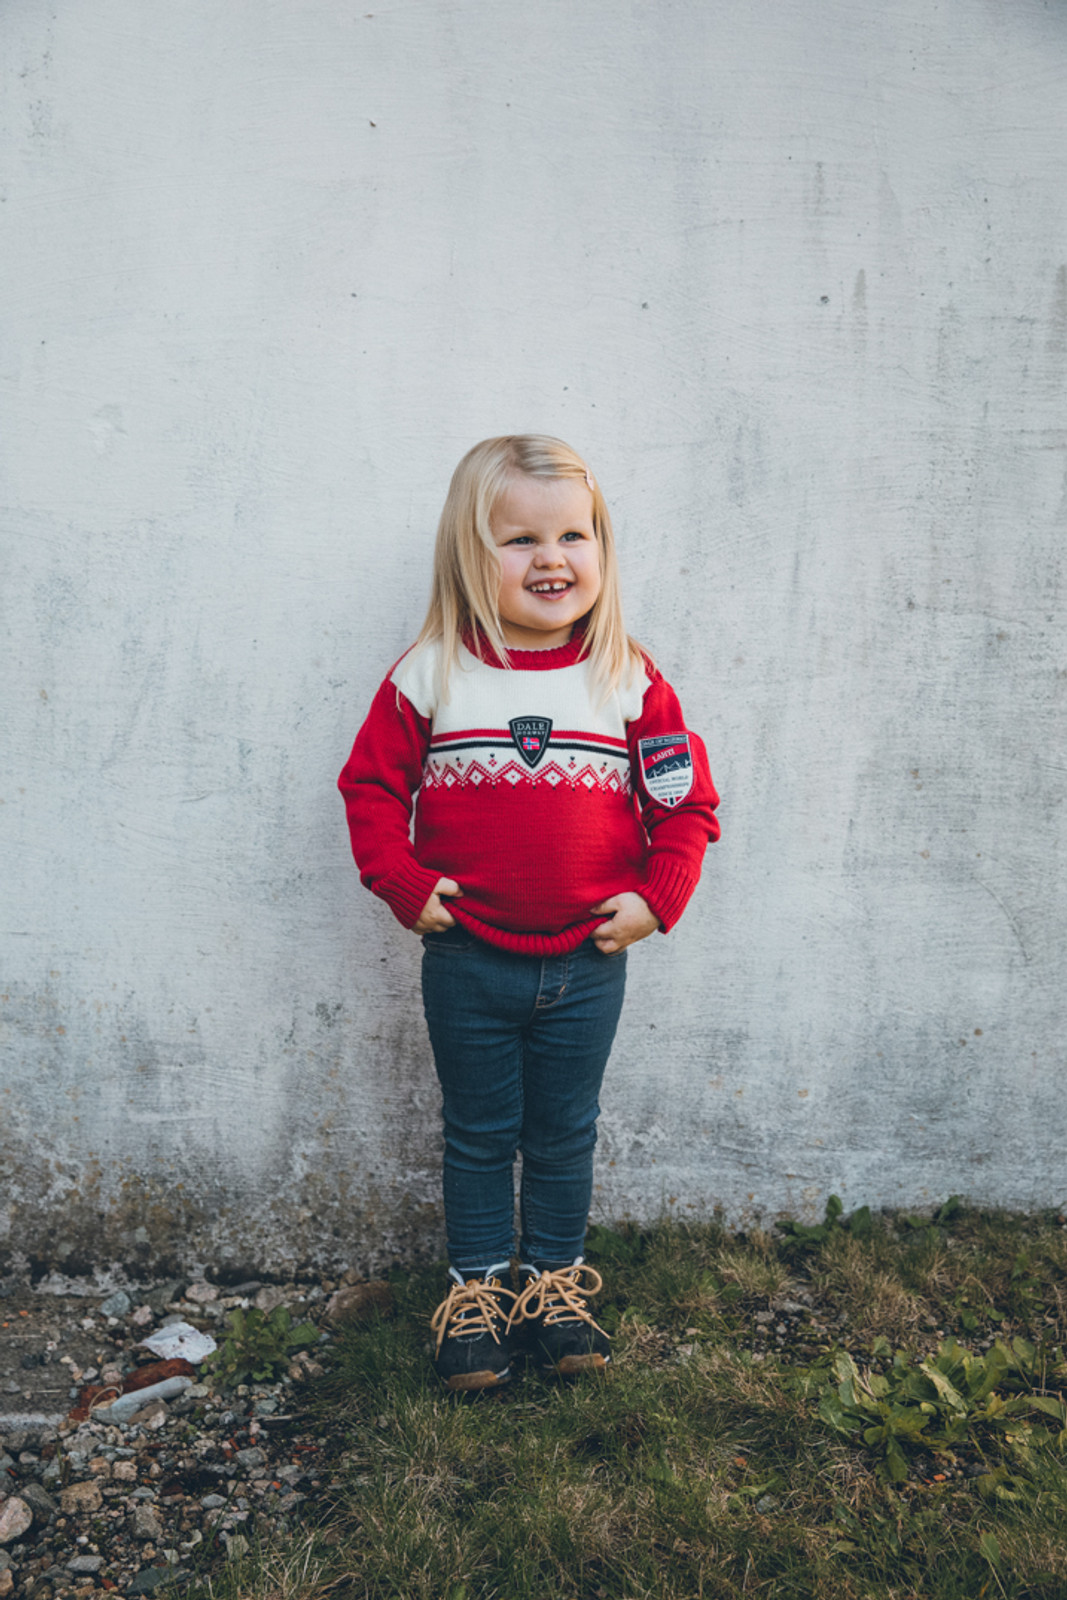 Child wearing Dale of Norway, Lahti childrens sweater in Raspberry/Off White/Navy, 93311-B